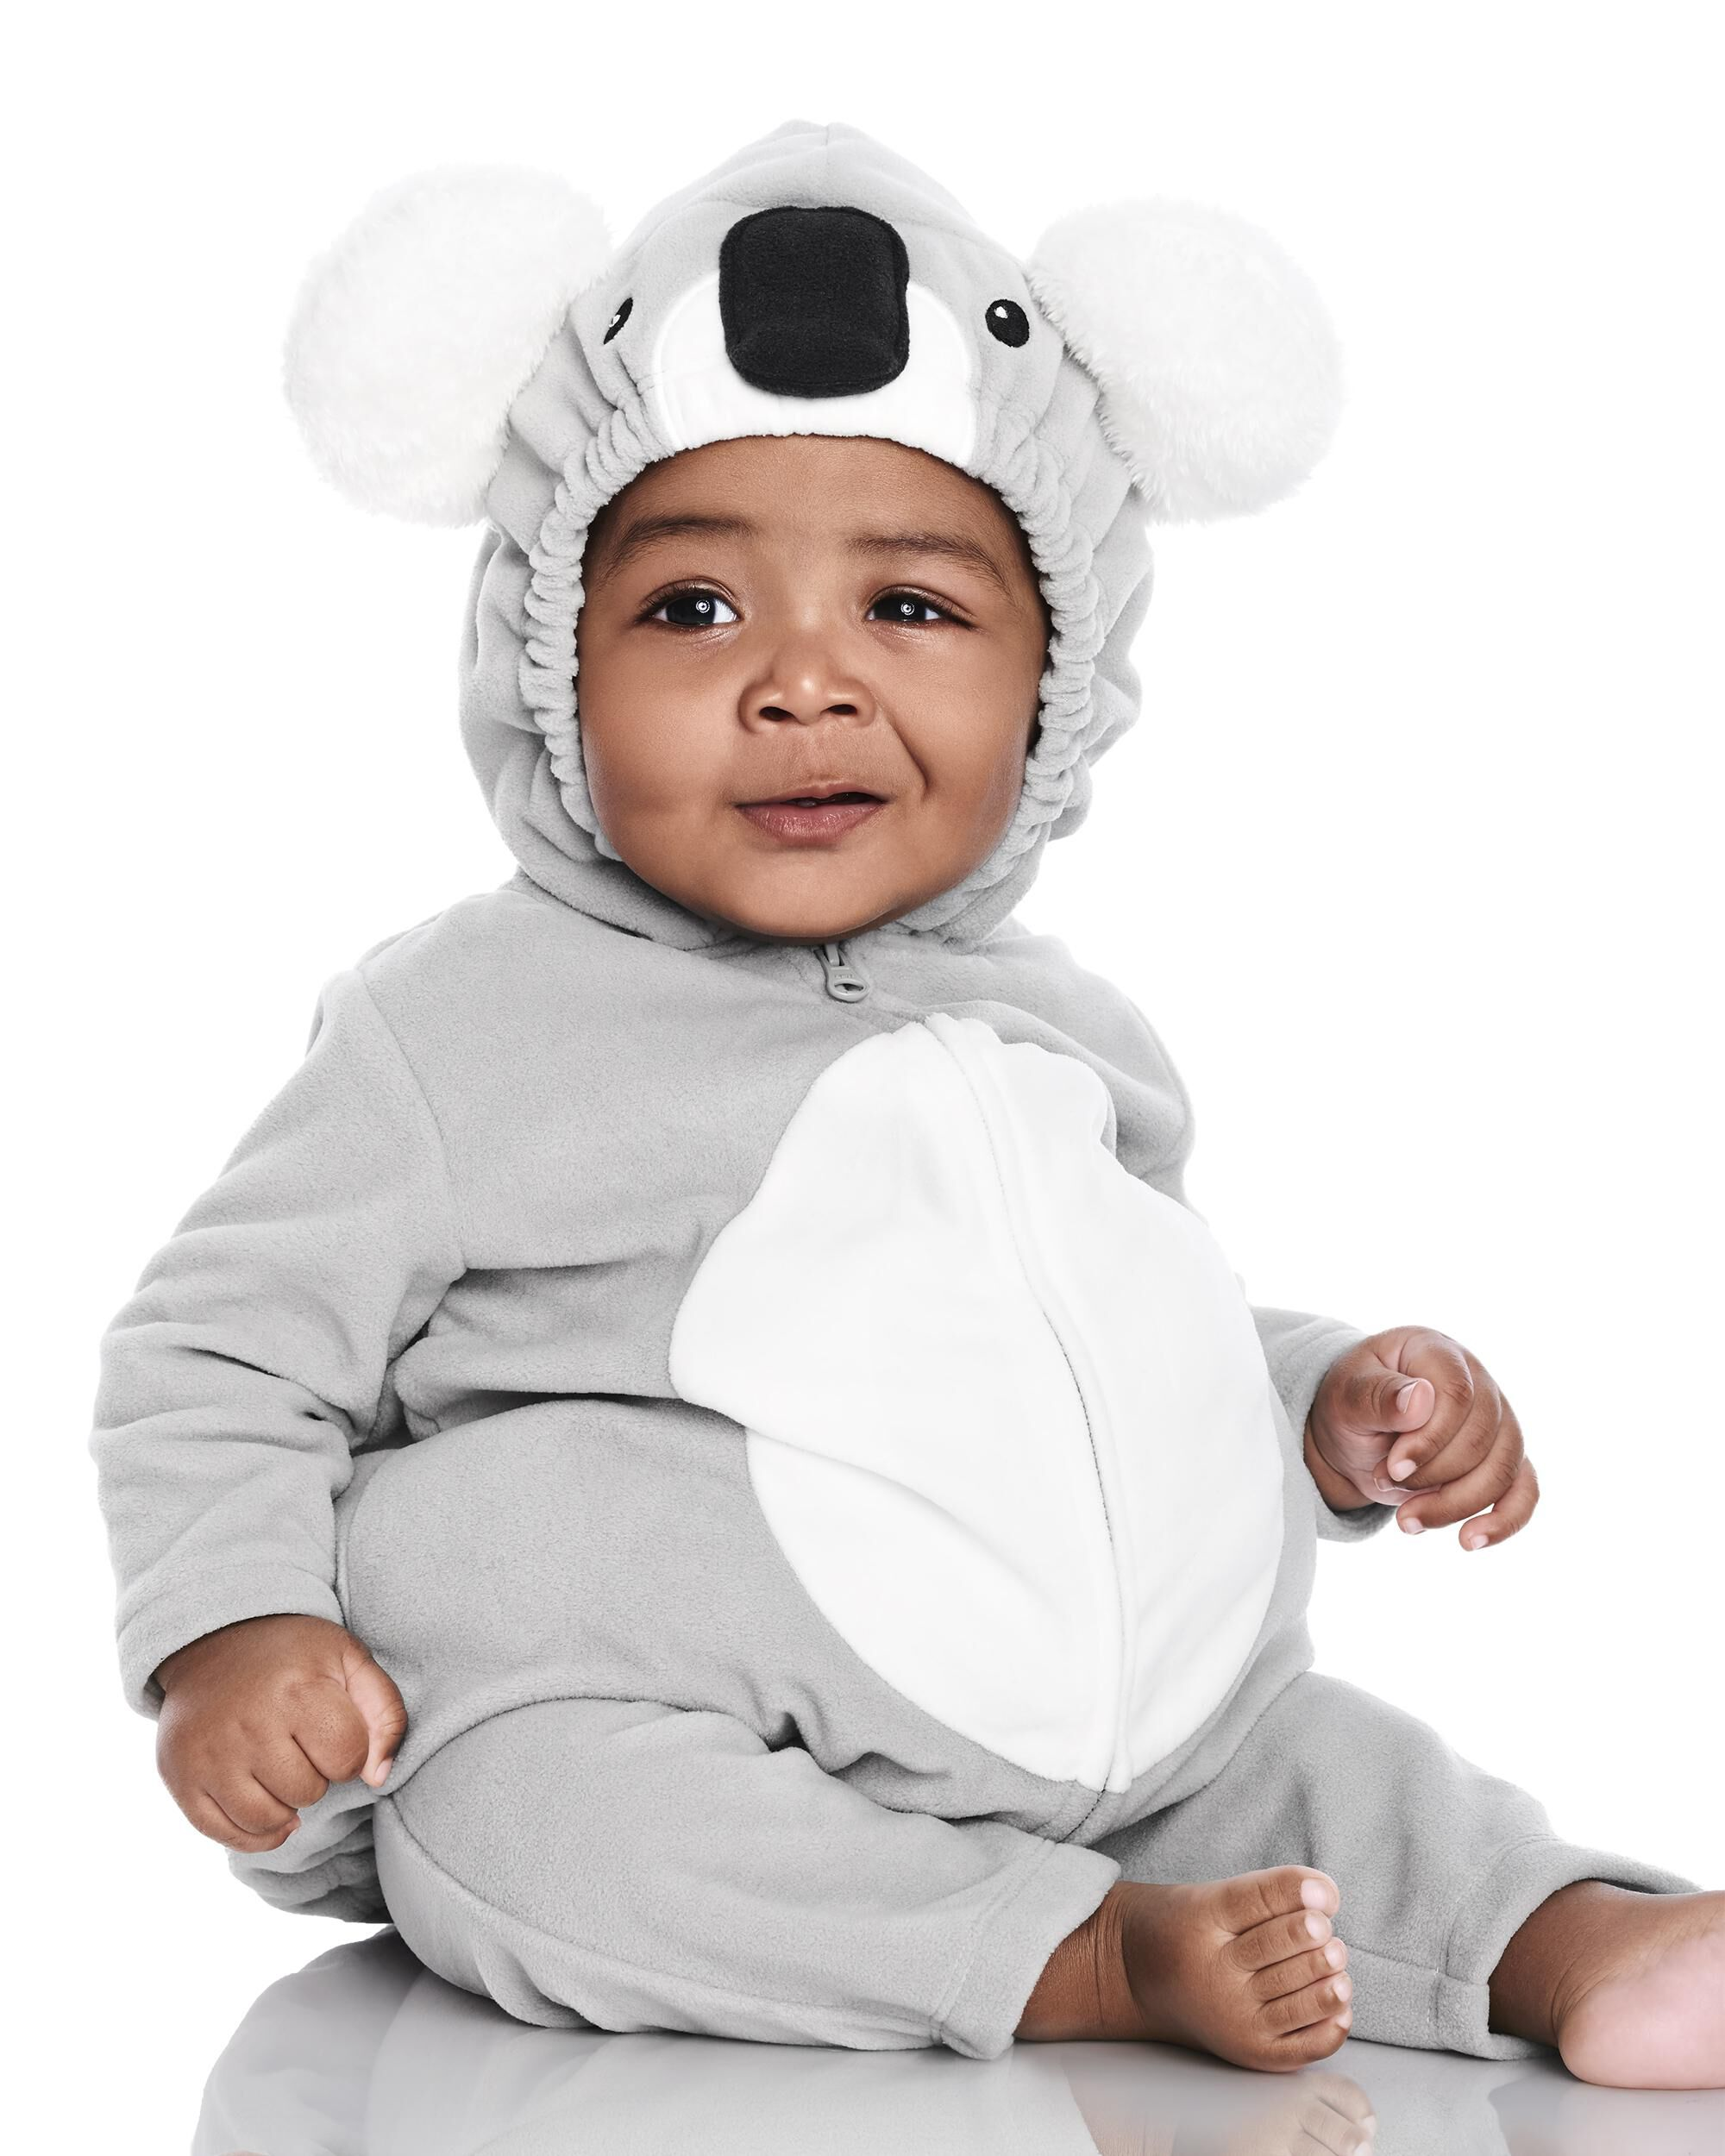 carters girl costumes baby pictures pics | www.picturesboss